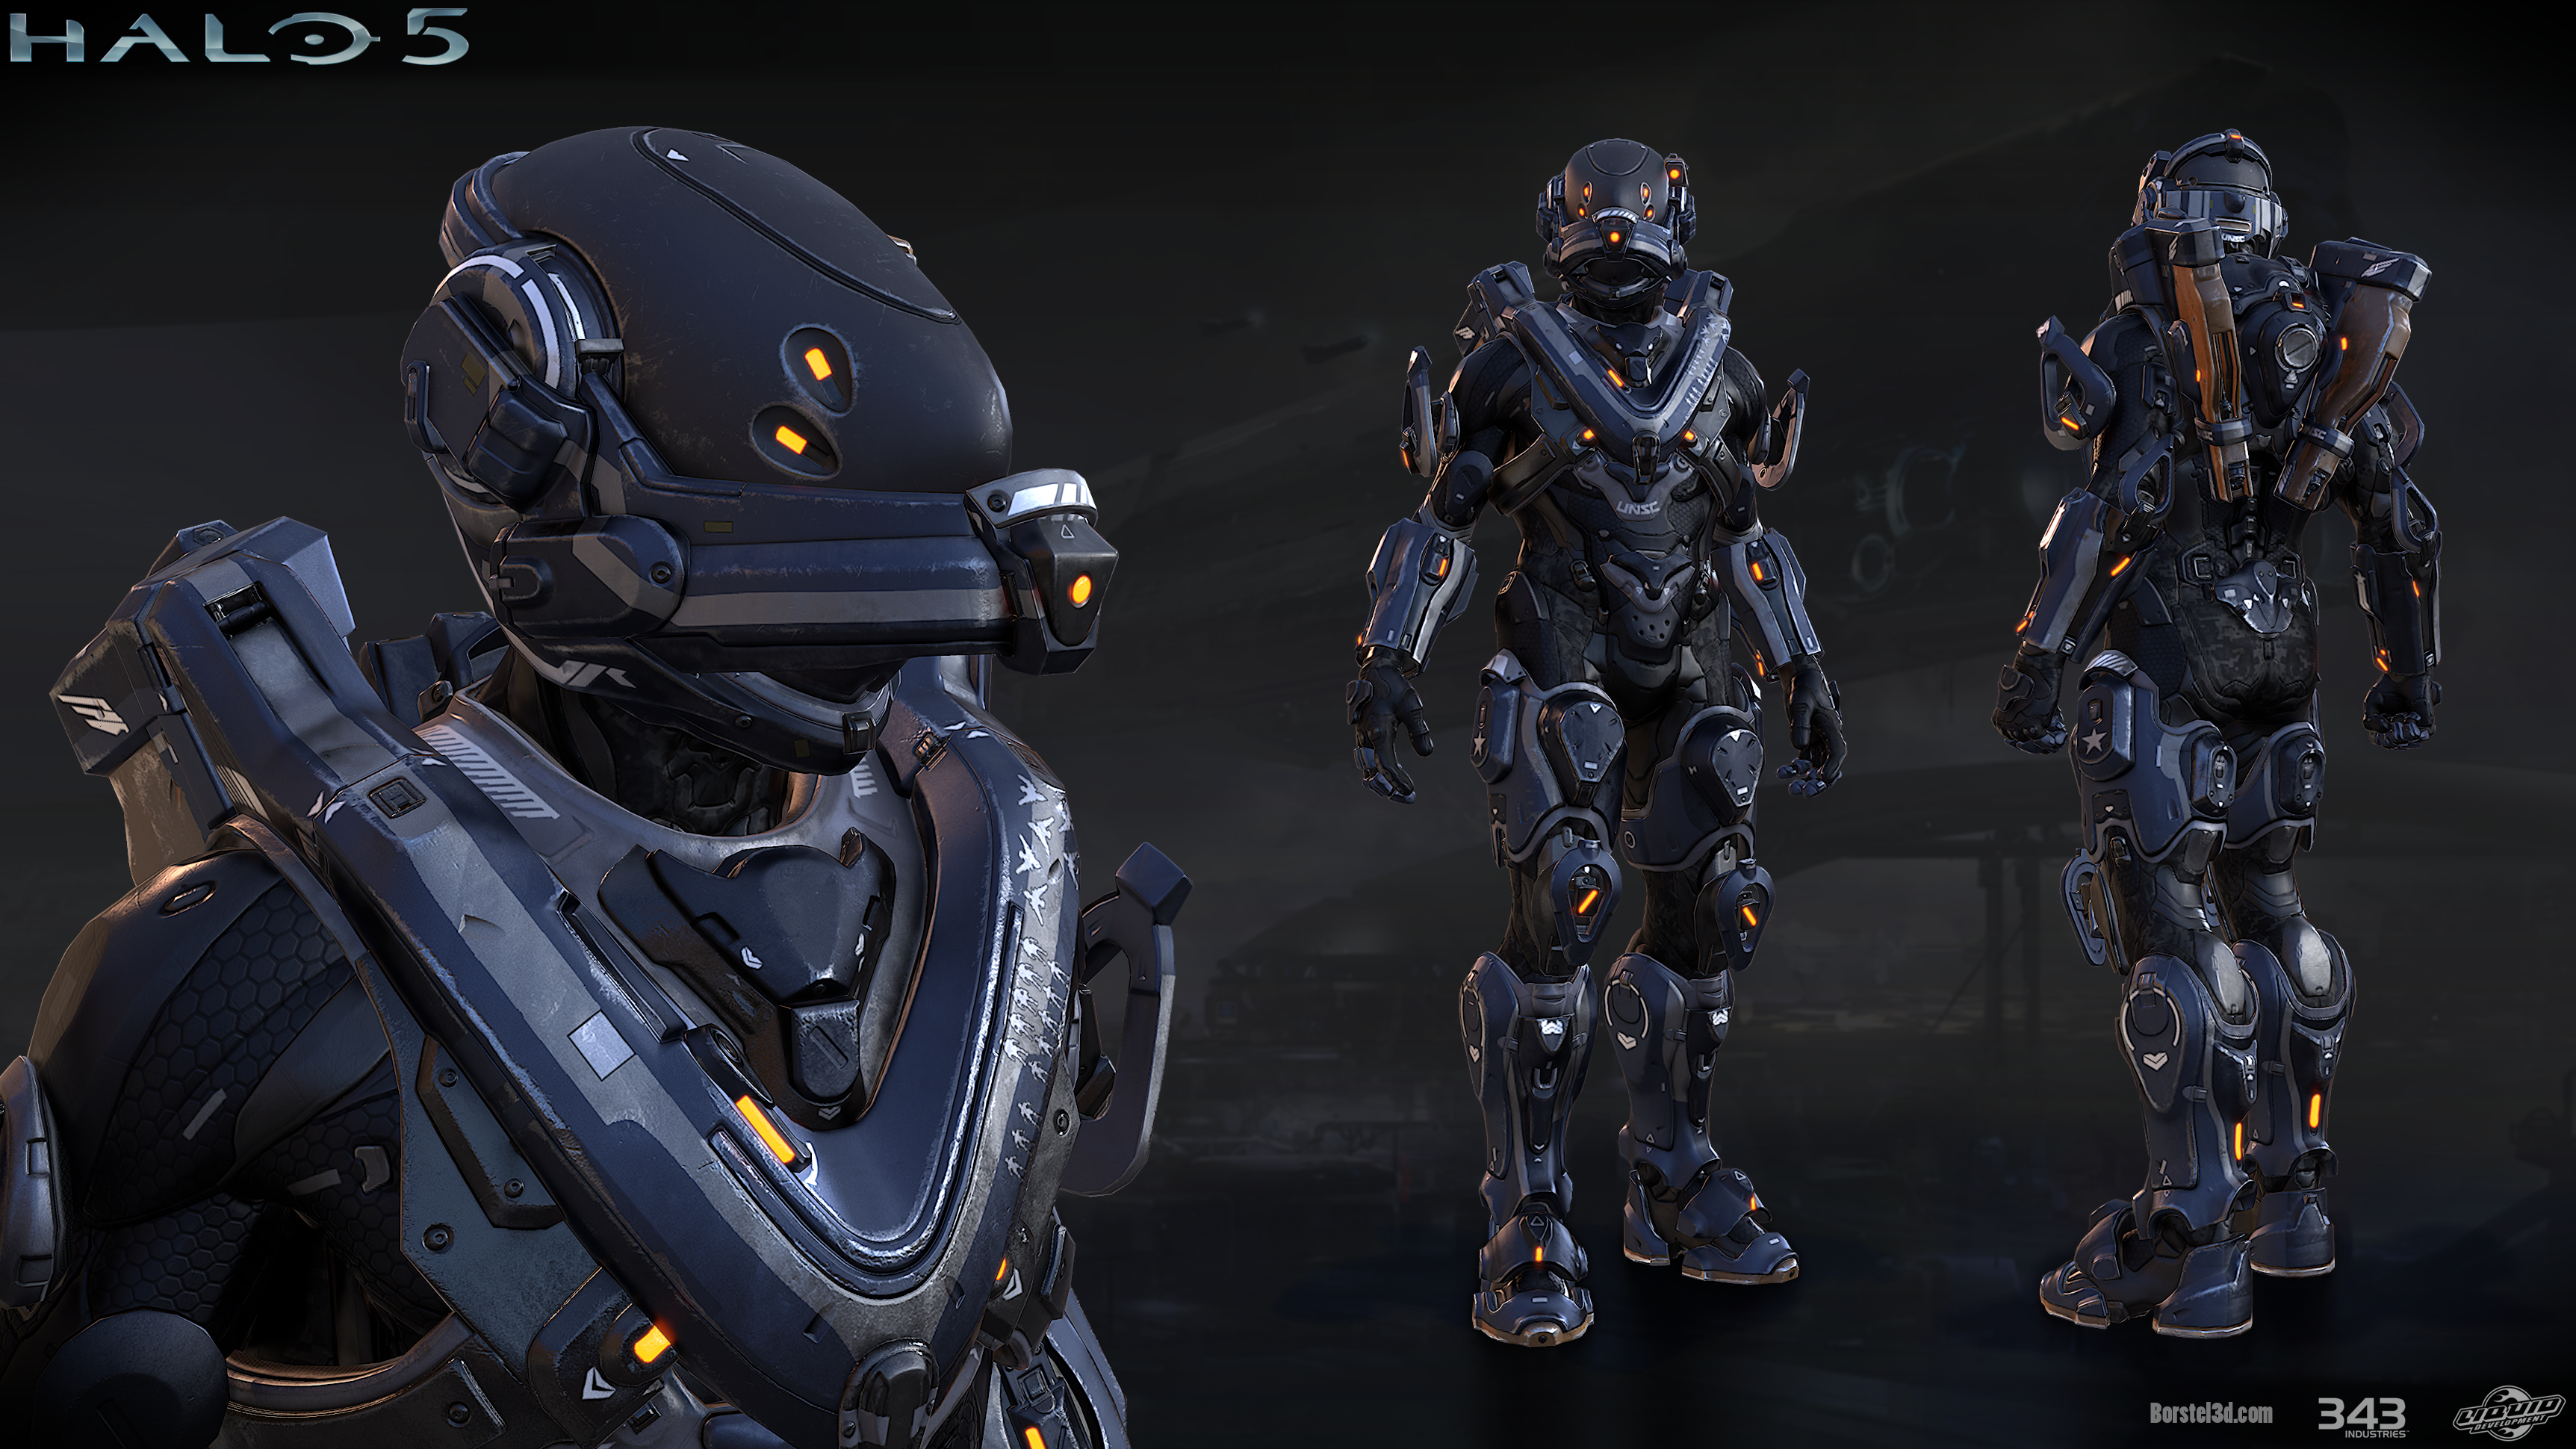 Halo 5 Mako Armor By Profchaos354 On Deviantart